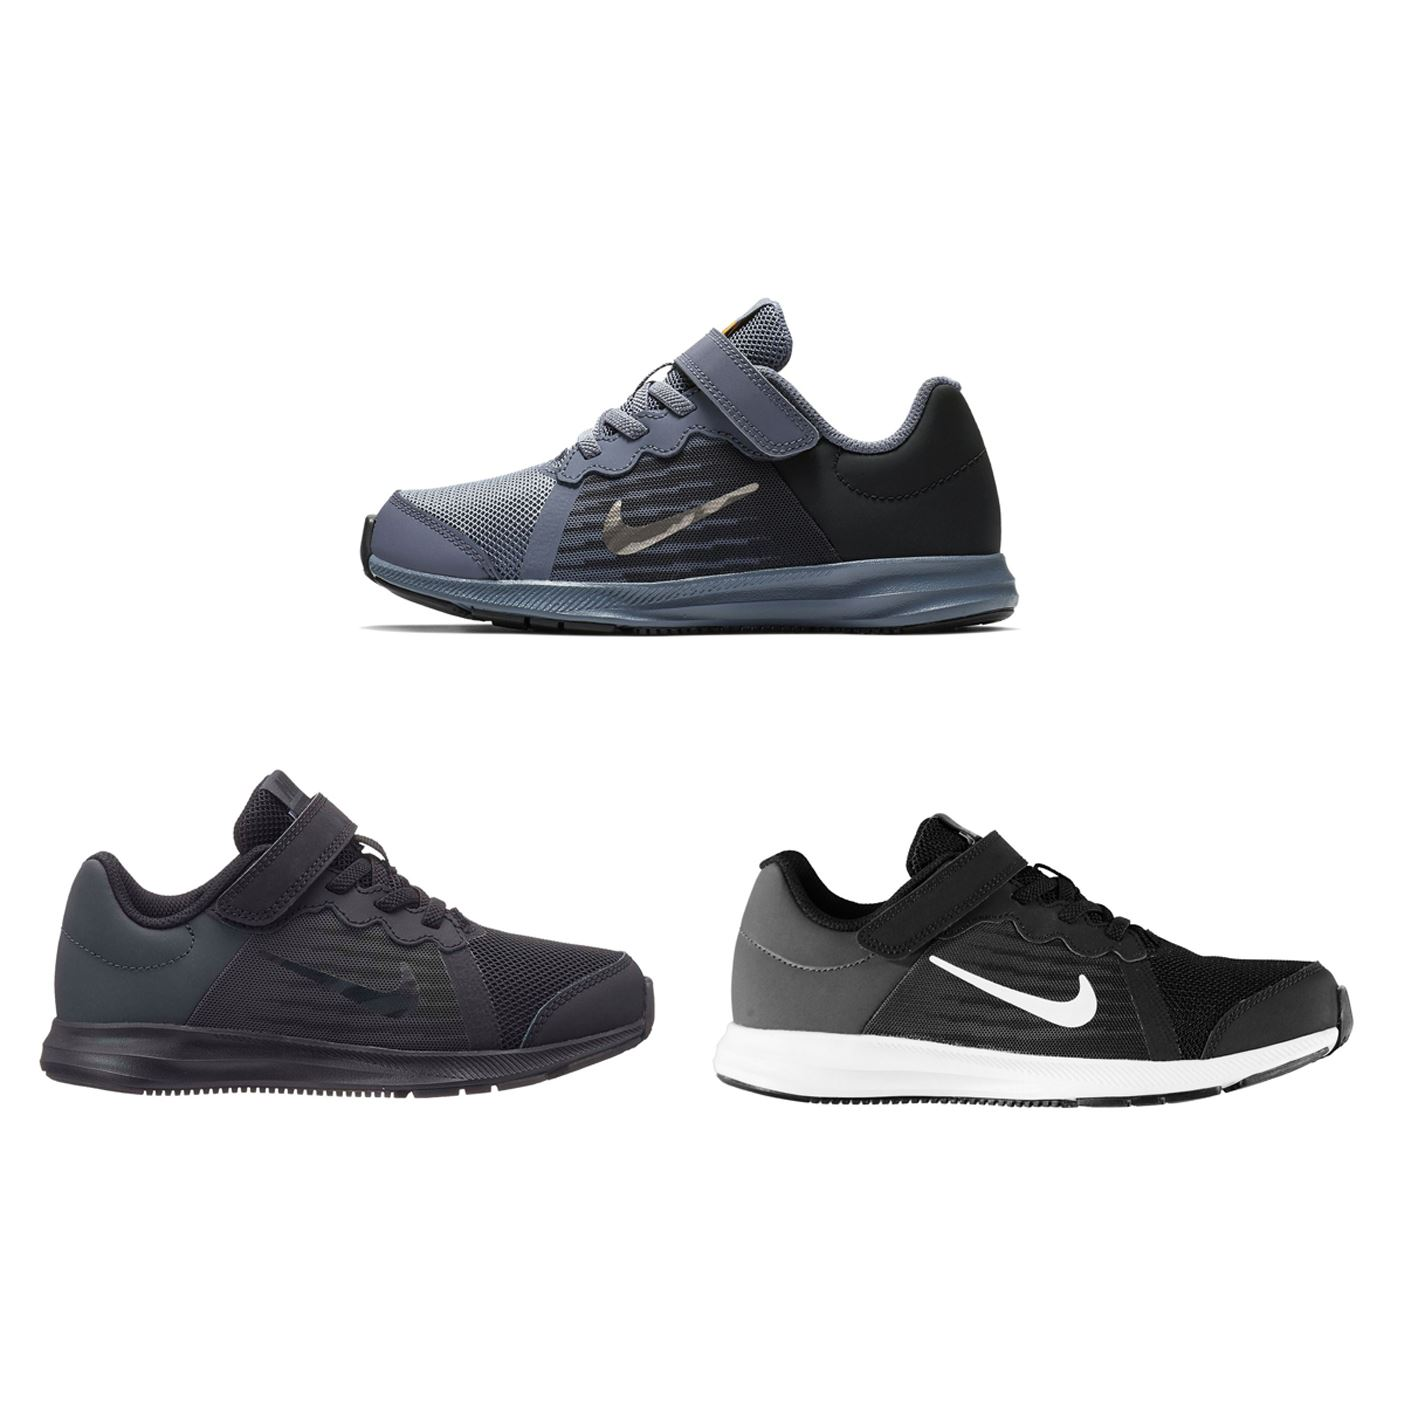 95338893c6 ... Nike Downshifter 8 Child Boy Trainers Shoes Footwear ...